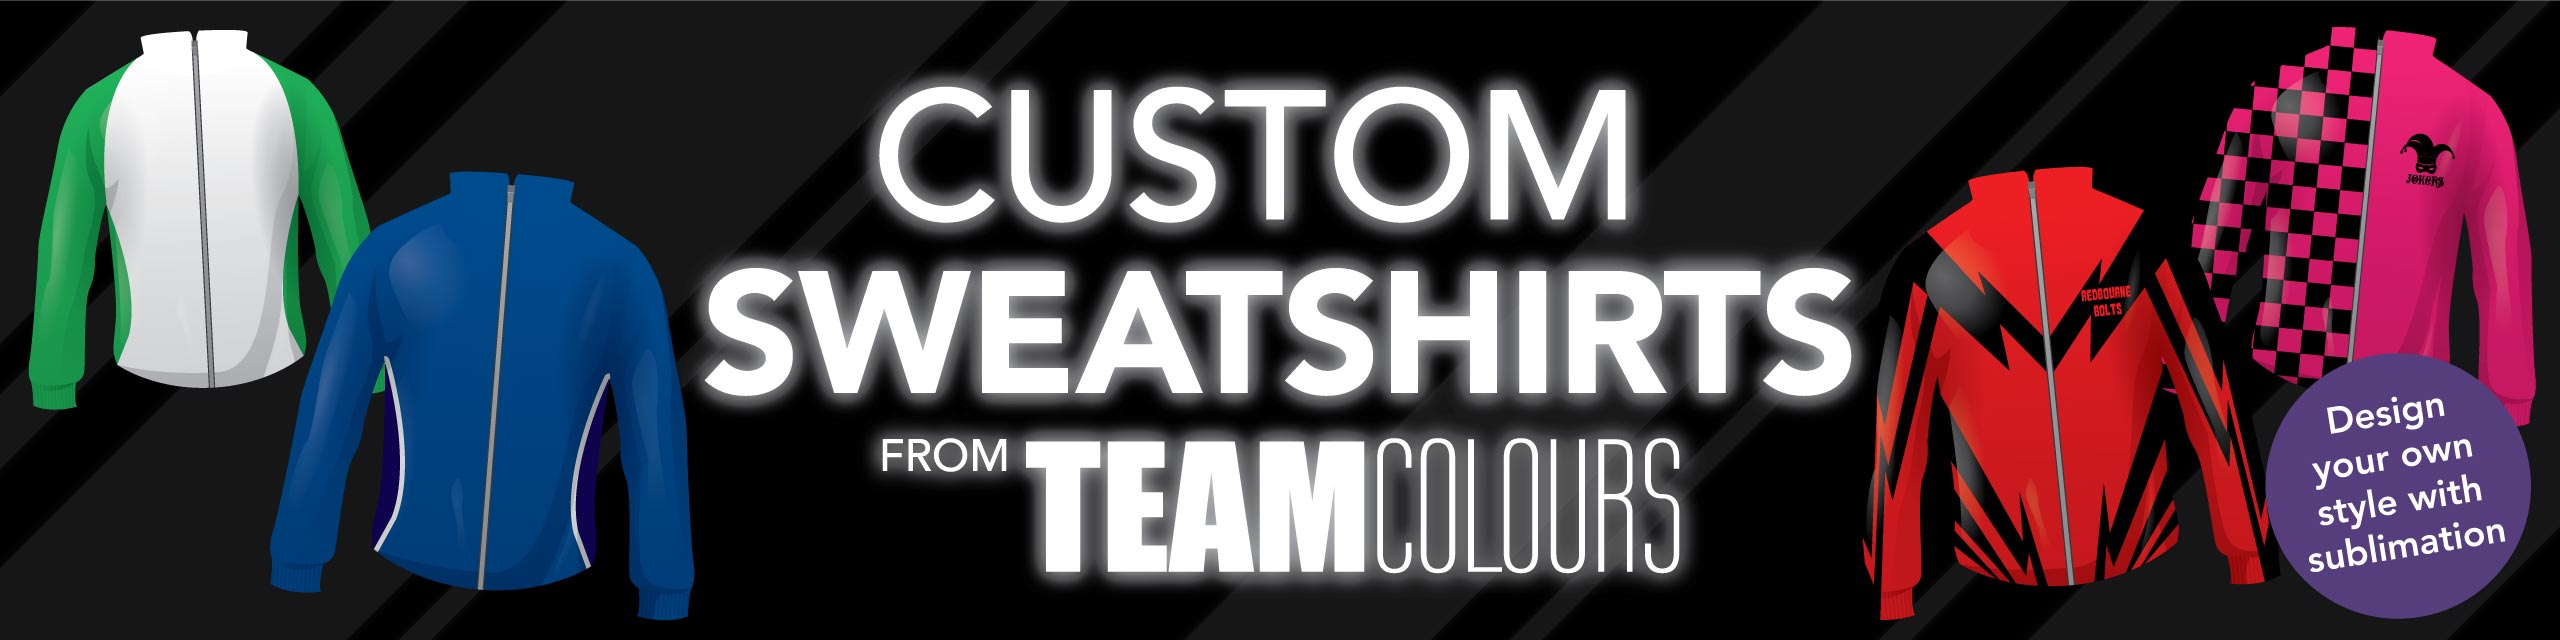 Design you own custom sweatshirts at Team Colours